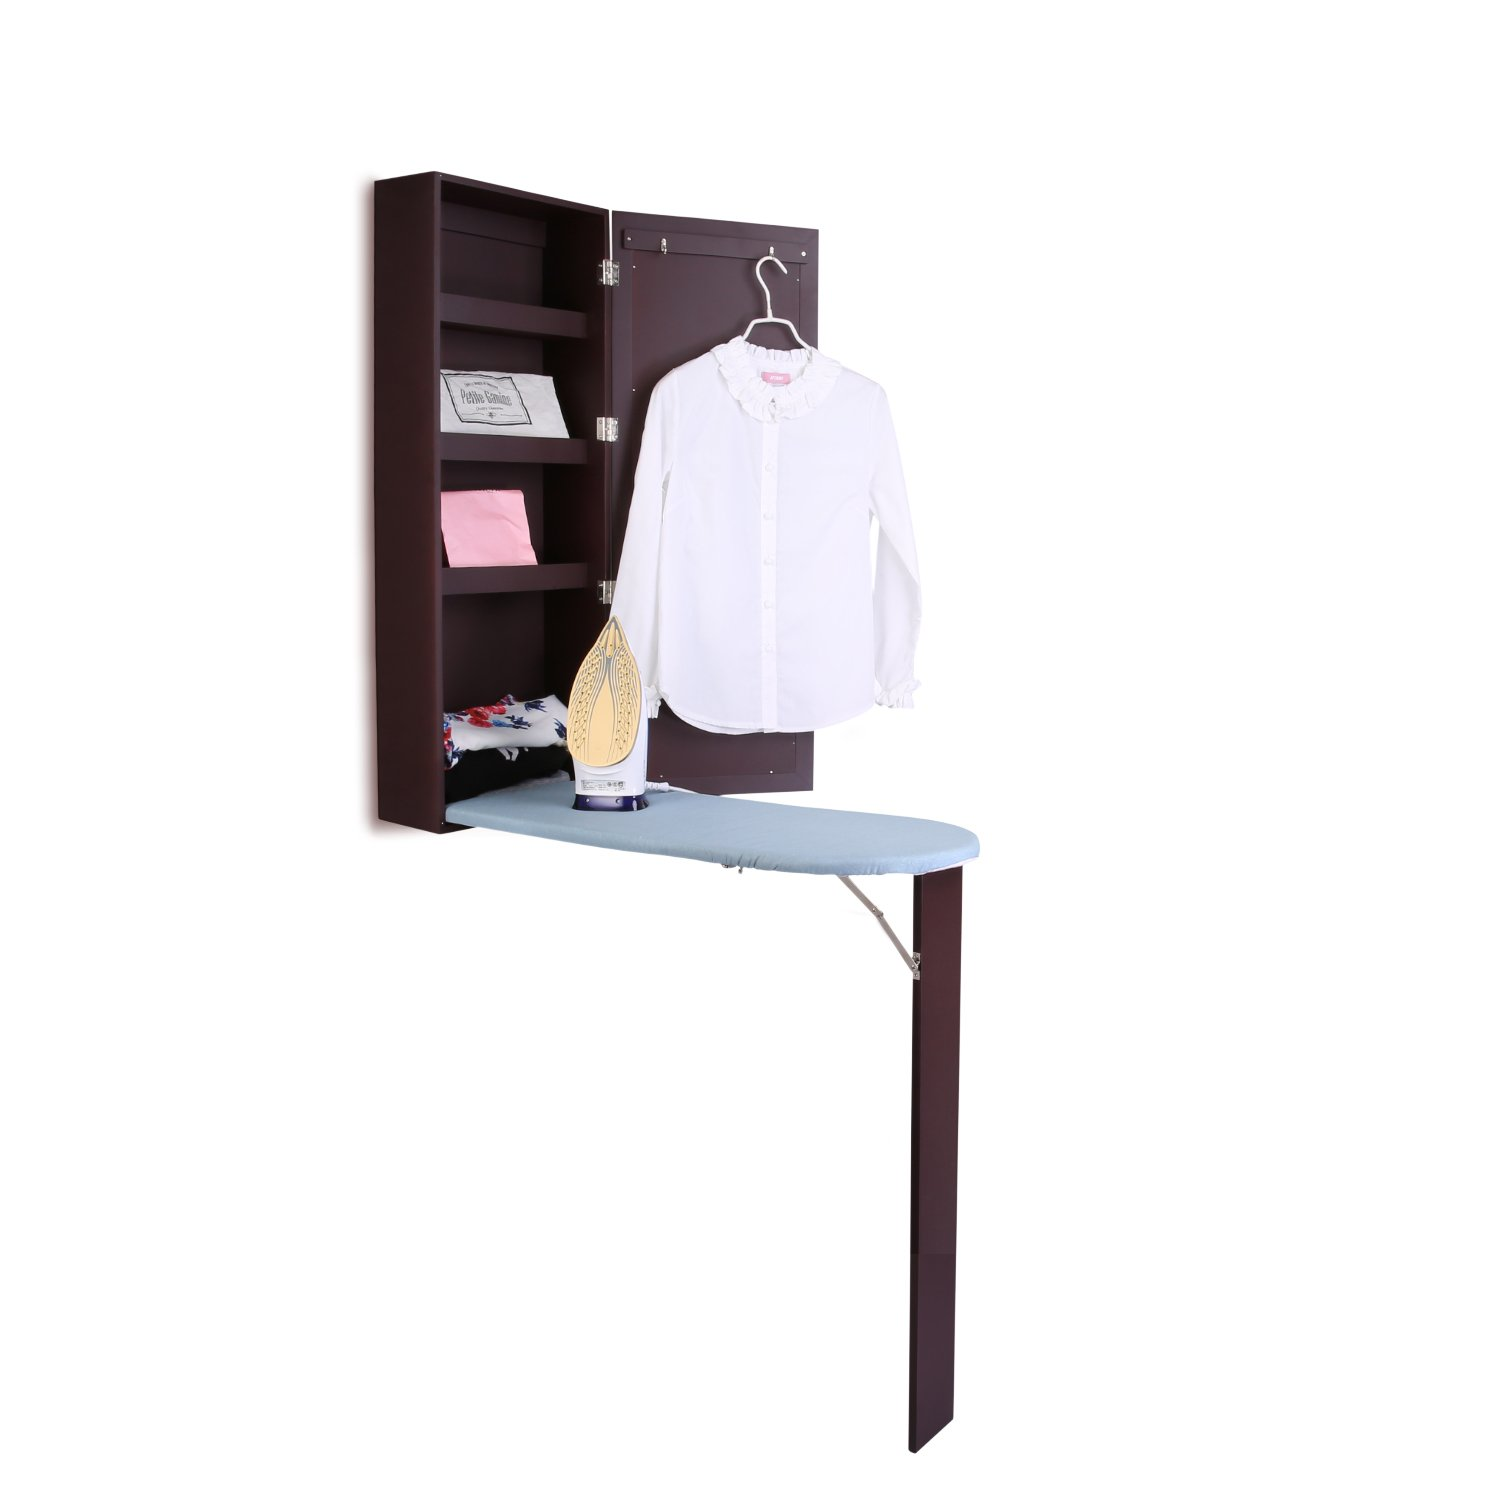 Ironing Board Cabinet,3 in 1 Wall Mount Ironing Center with Foldable Iron Board , Mirrore Cabinet & Suit Hook,Premium MDF Multi-functional Storage Shelves Ironing Board Center(Ship From USA) (Brown)